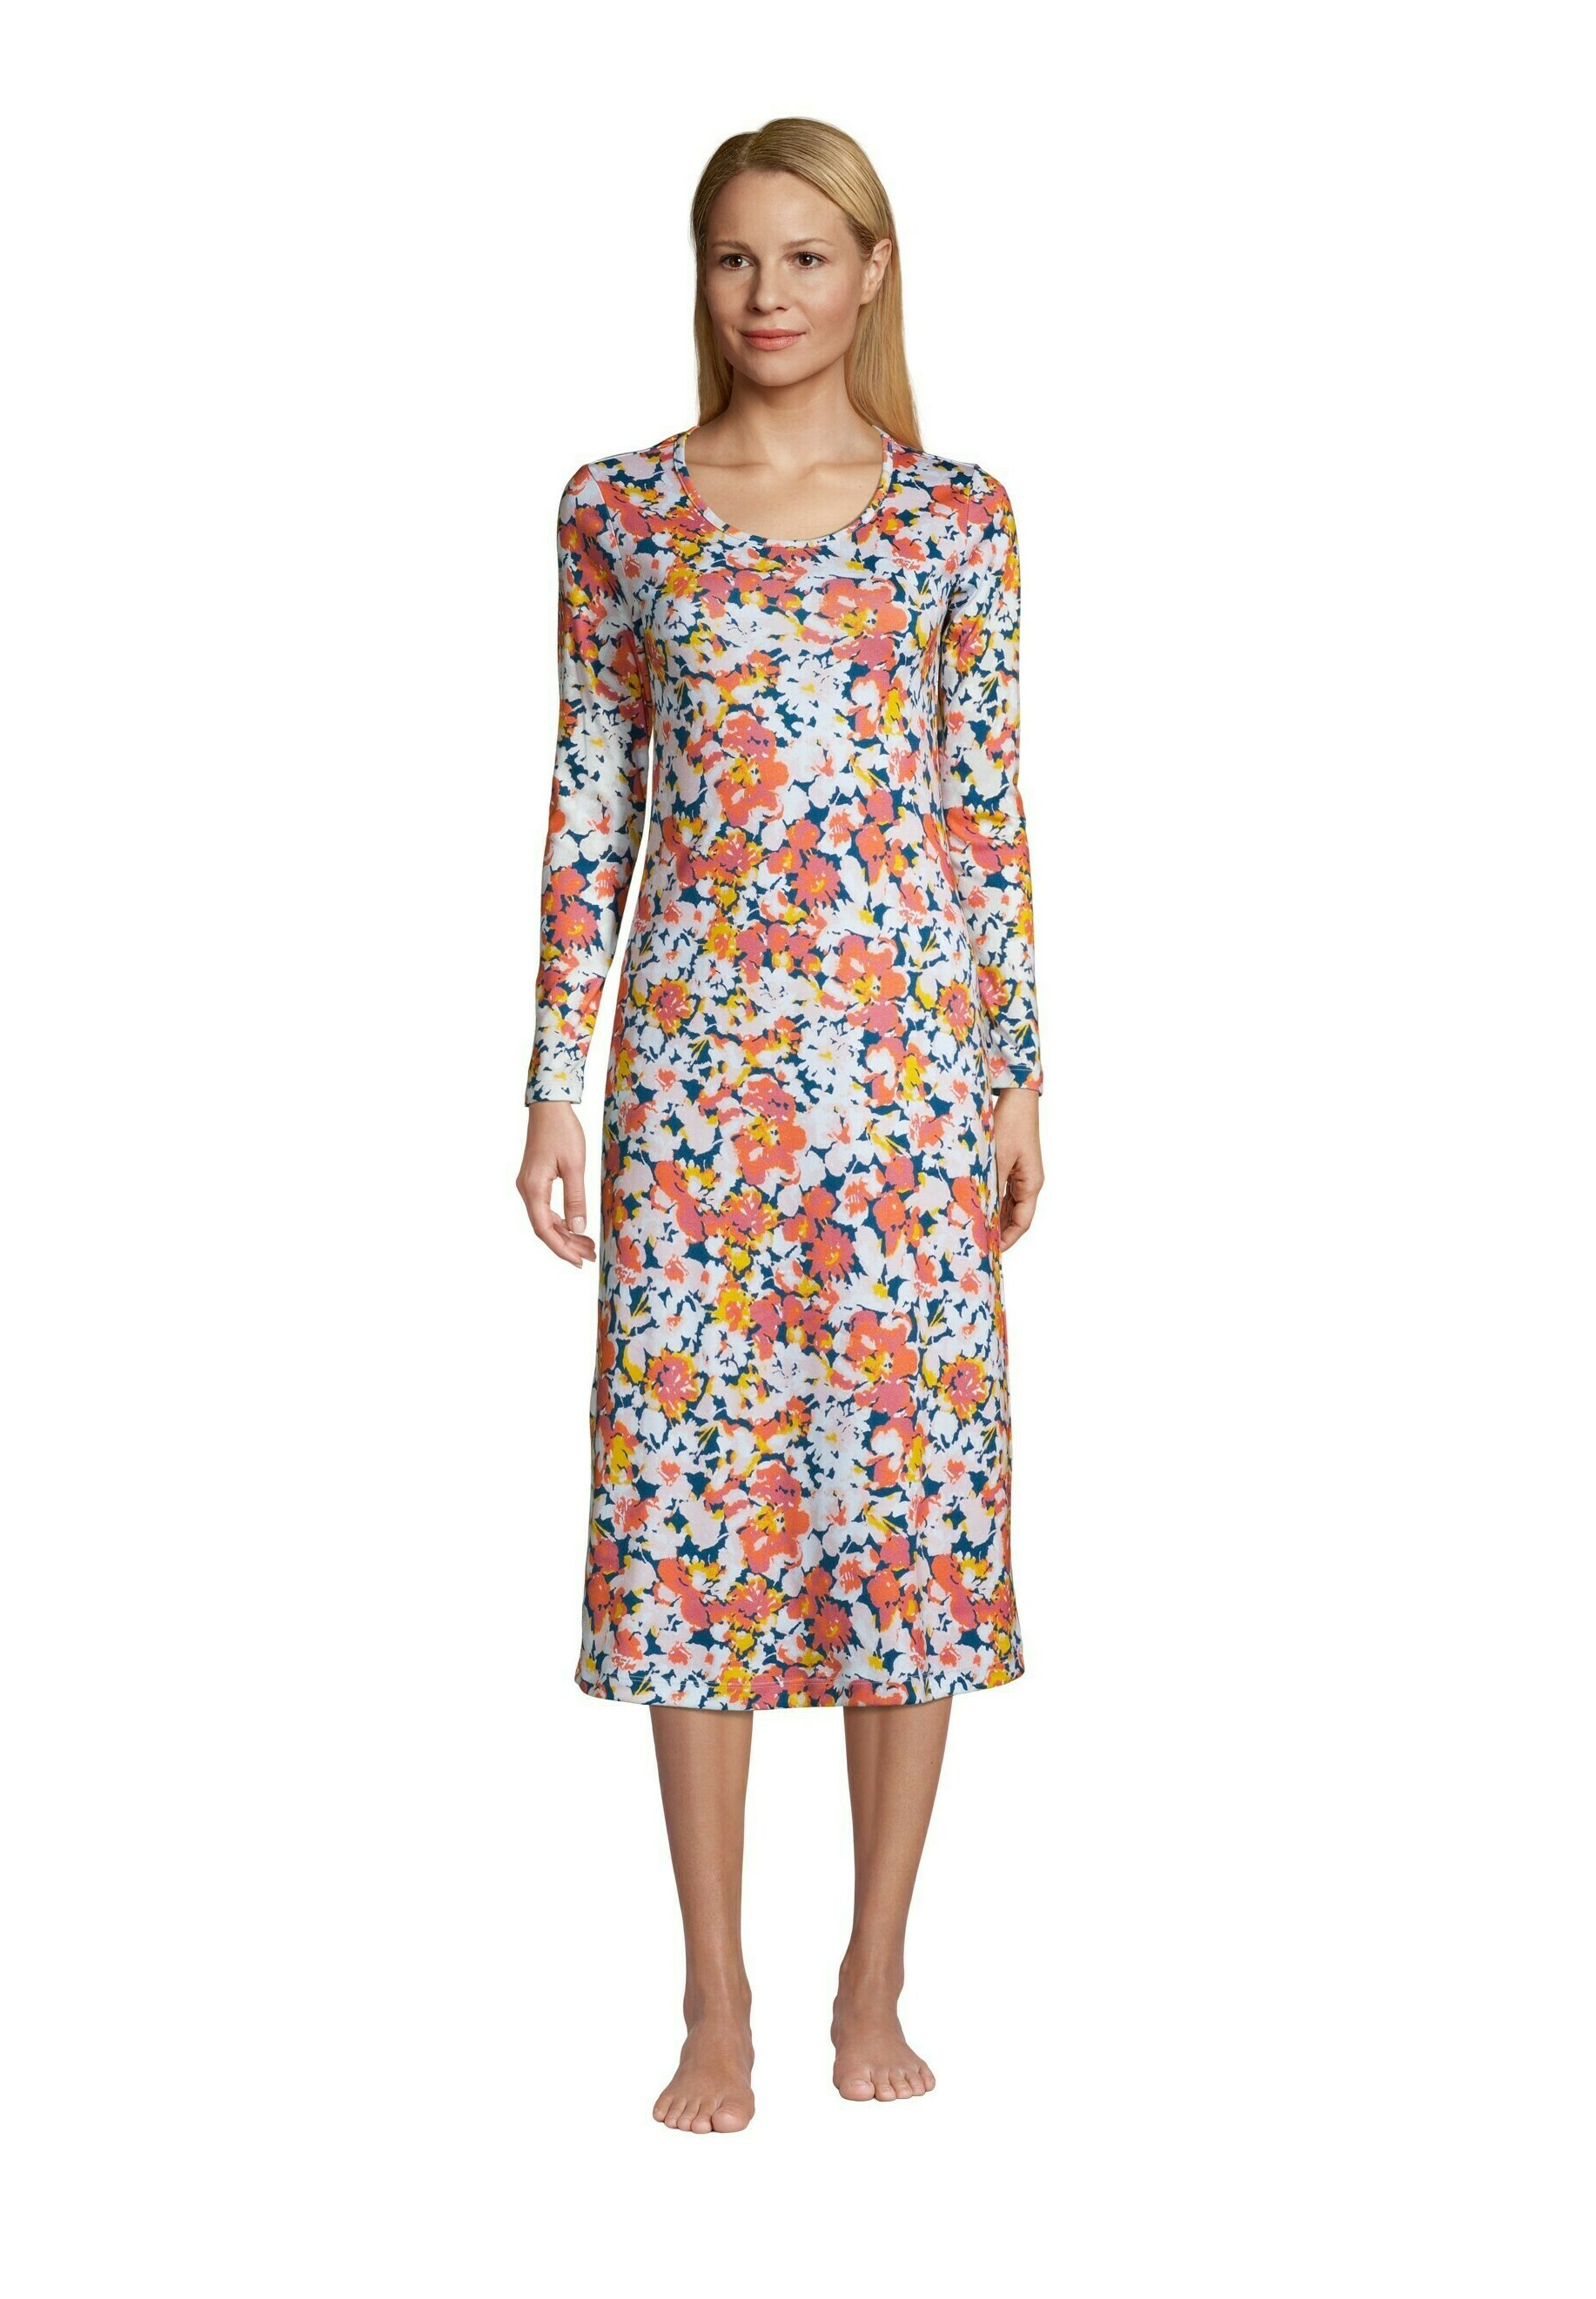 Damen Nachthemd - baltic teal multi dyed floral